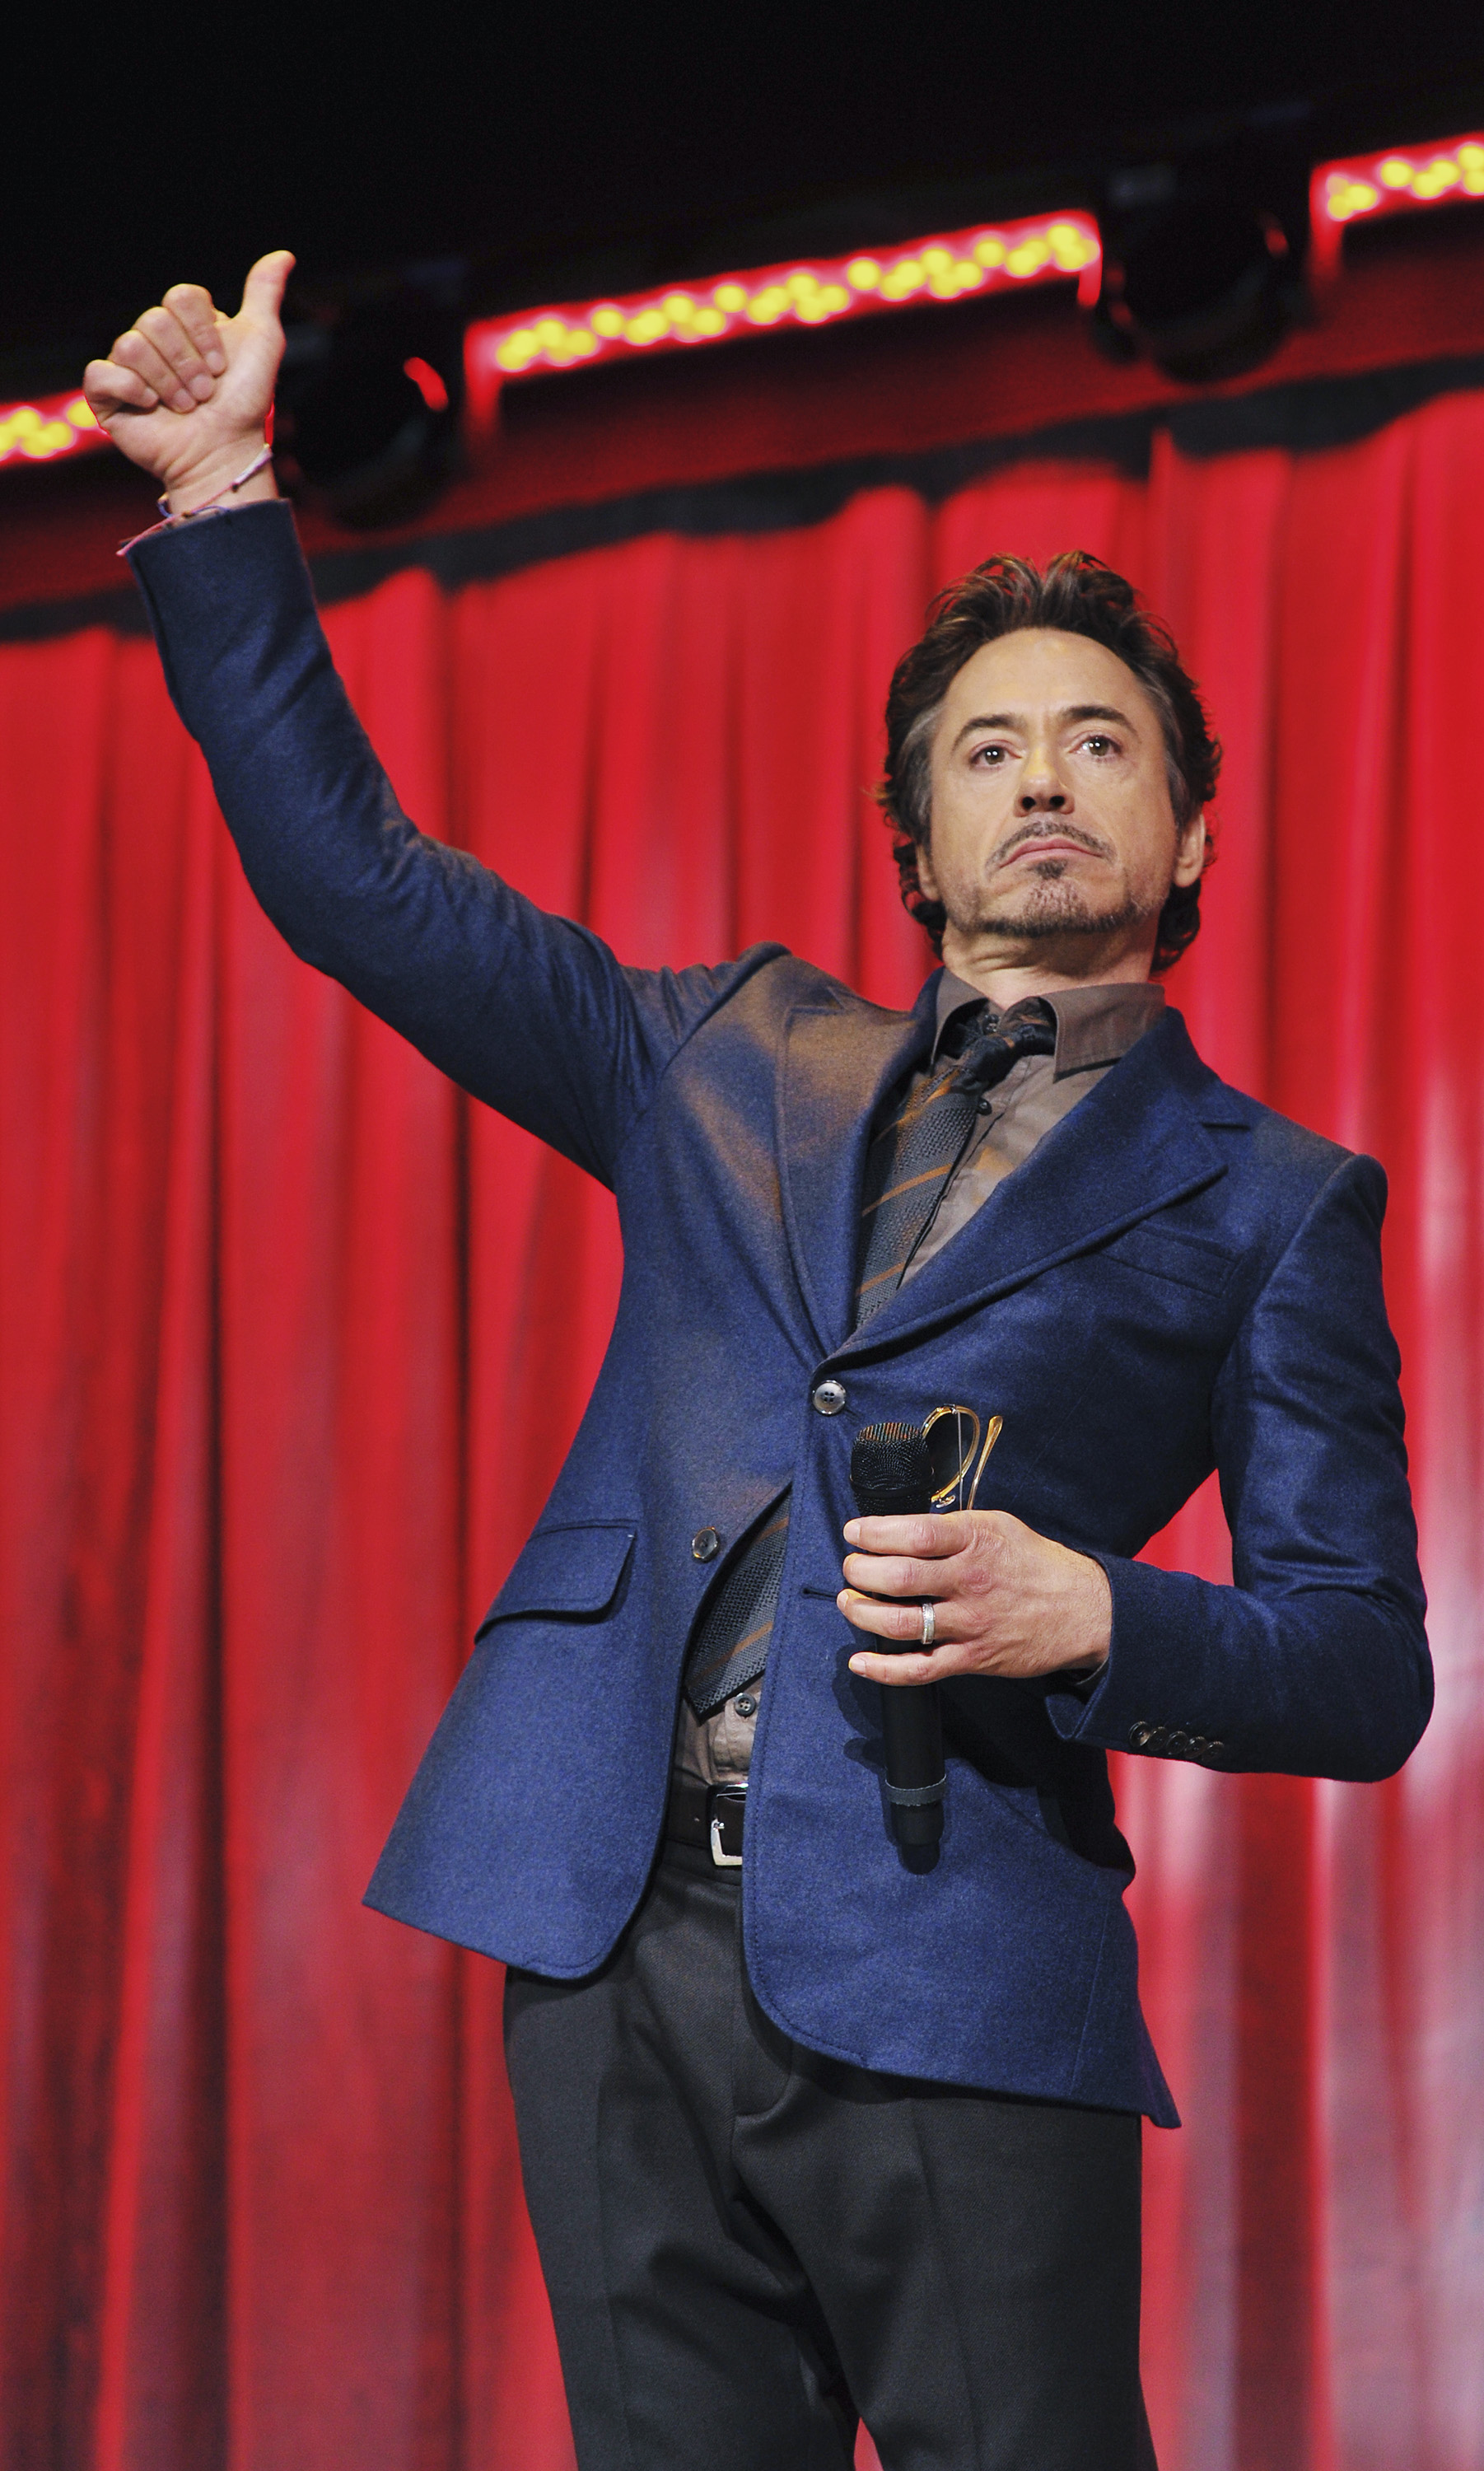 Robert Downey Jr. gave the audience a thumb's up.